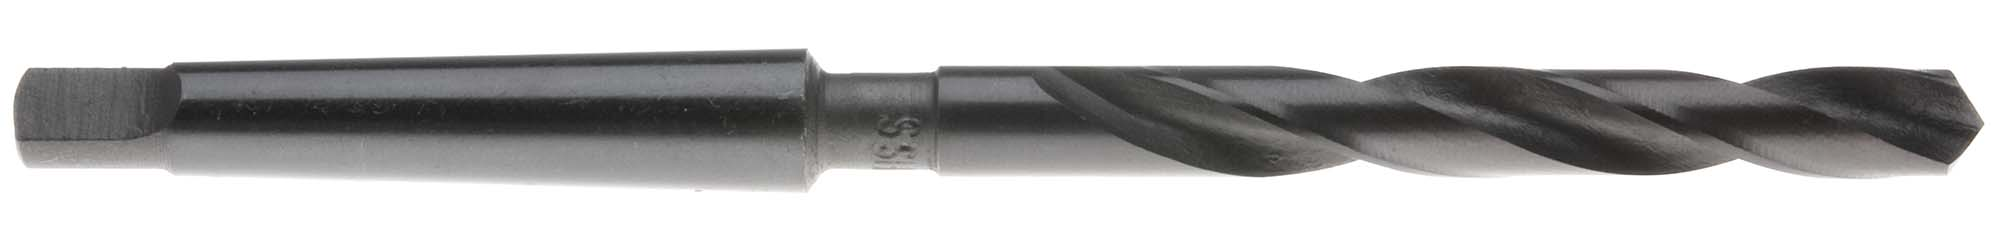 26.5 mm Taper Shank Drill, High Speed Steel